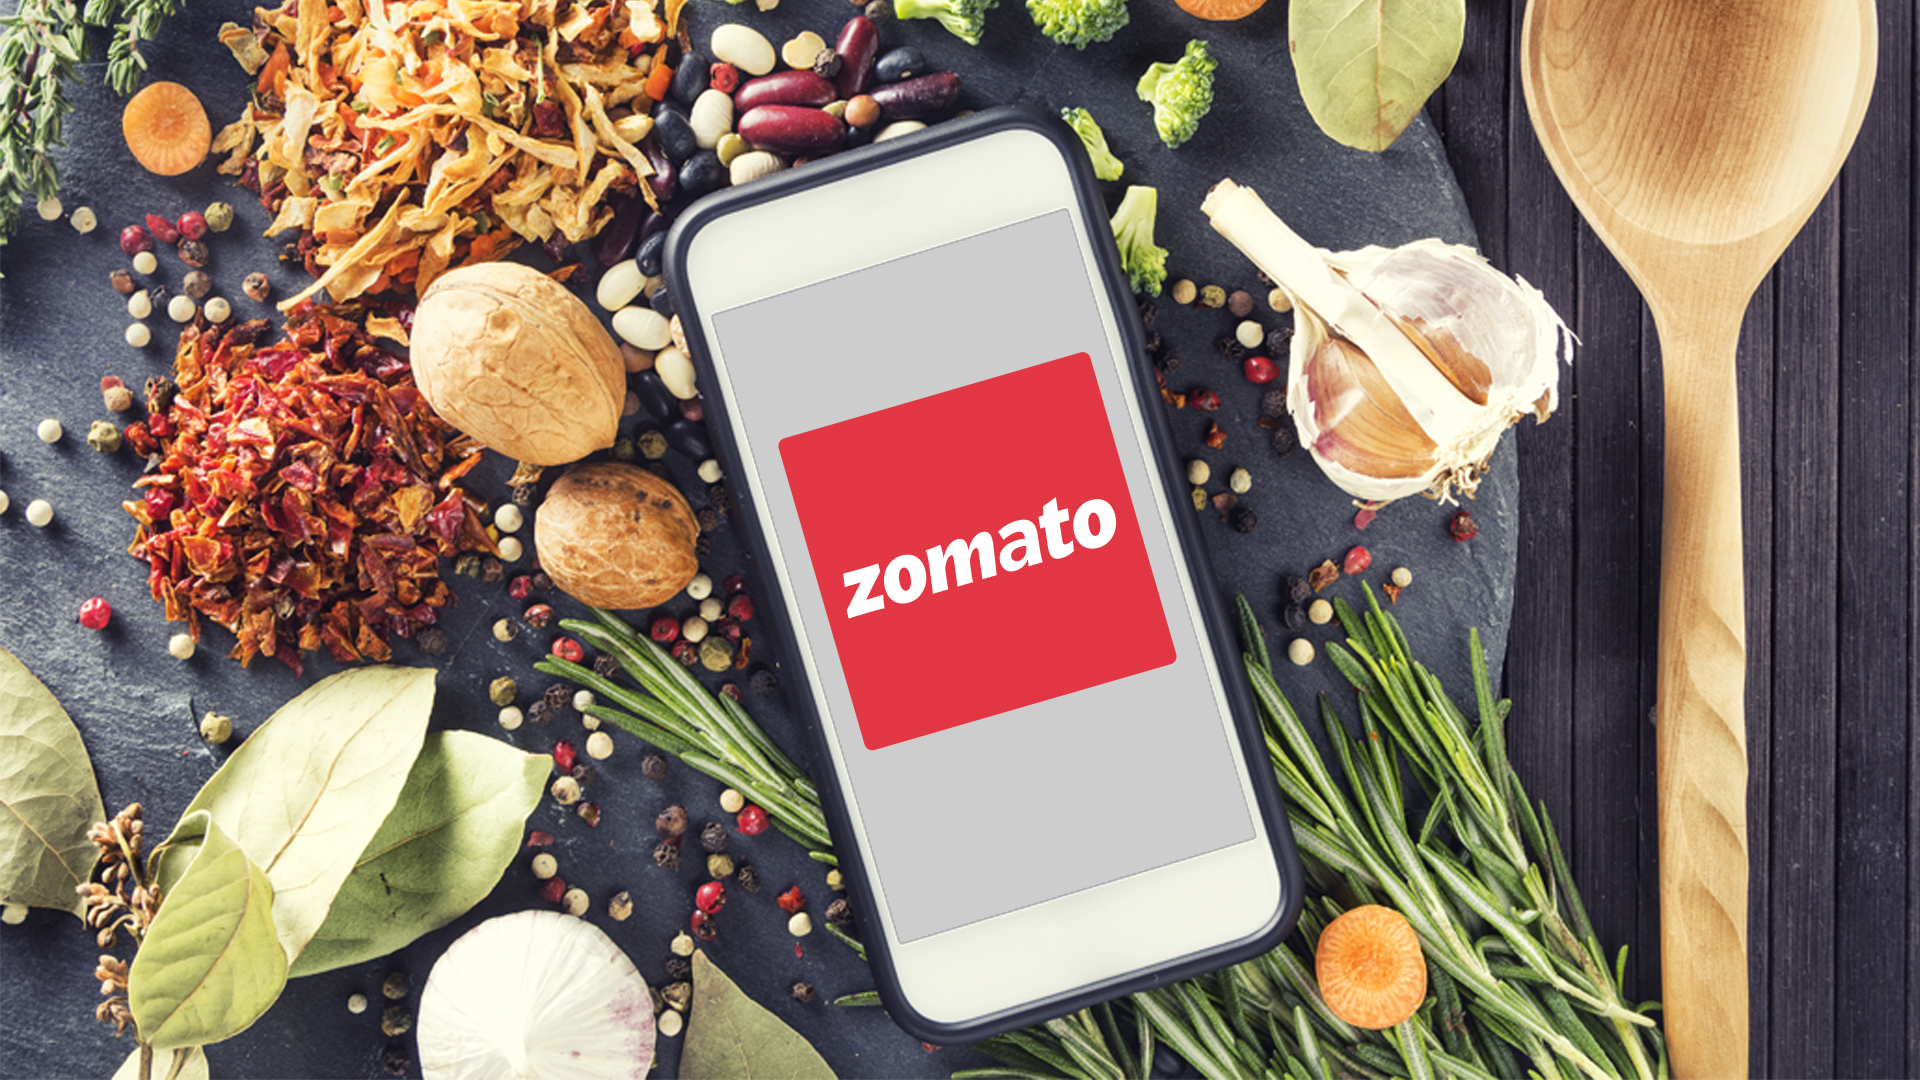 a summary of Zomato's incredible marketing strategy and initiative from Talkwalker